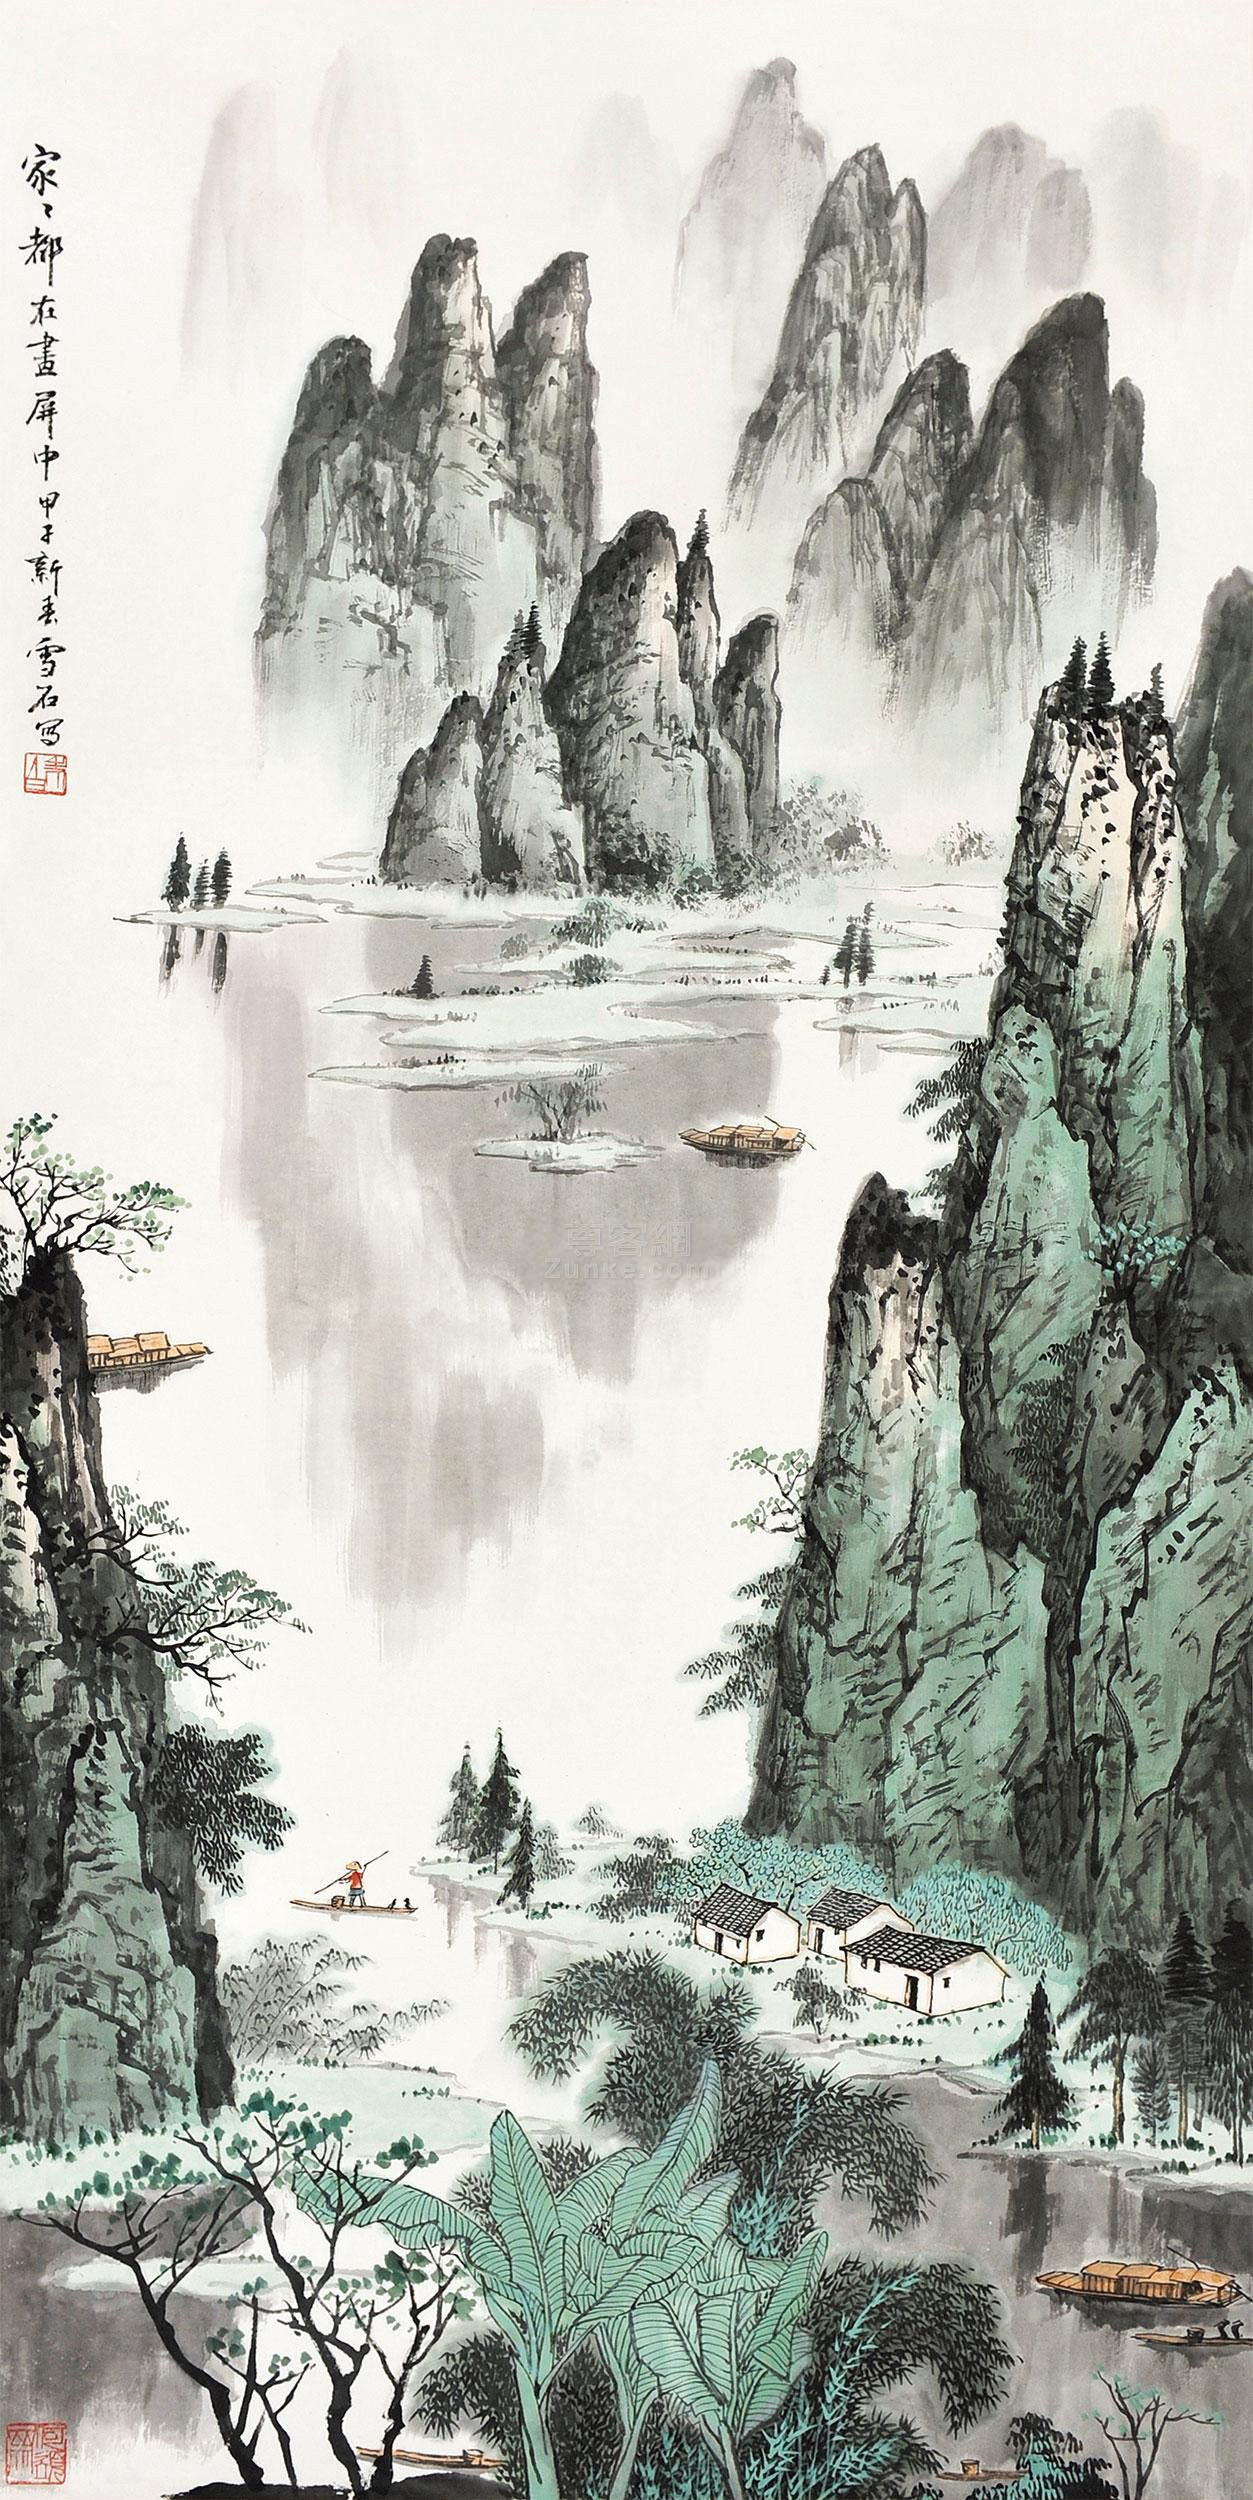 Pin By Coocoo Cachoo On Kithri Chinese Artwork Japan Painting Chinese Art